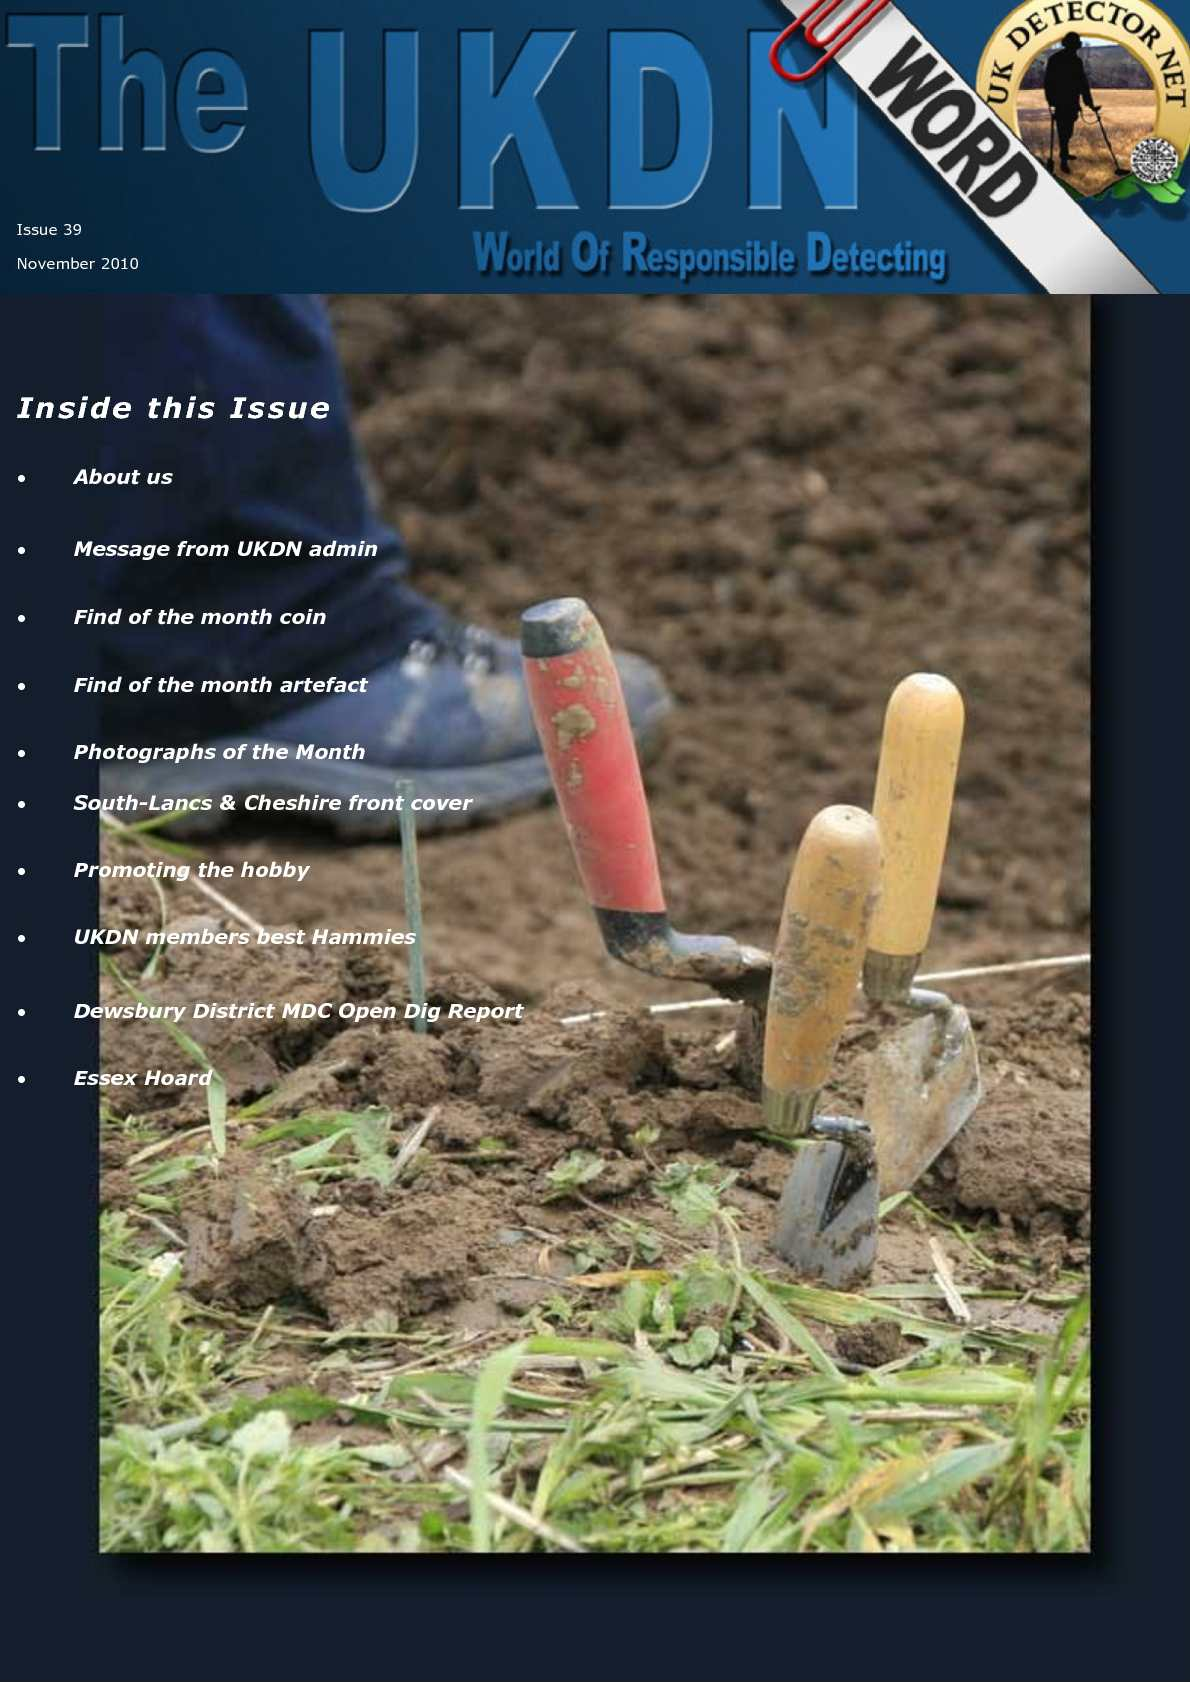 UKDN Word Issue 39 - November 2010